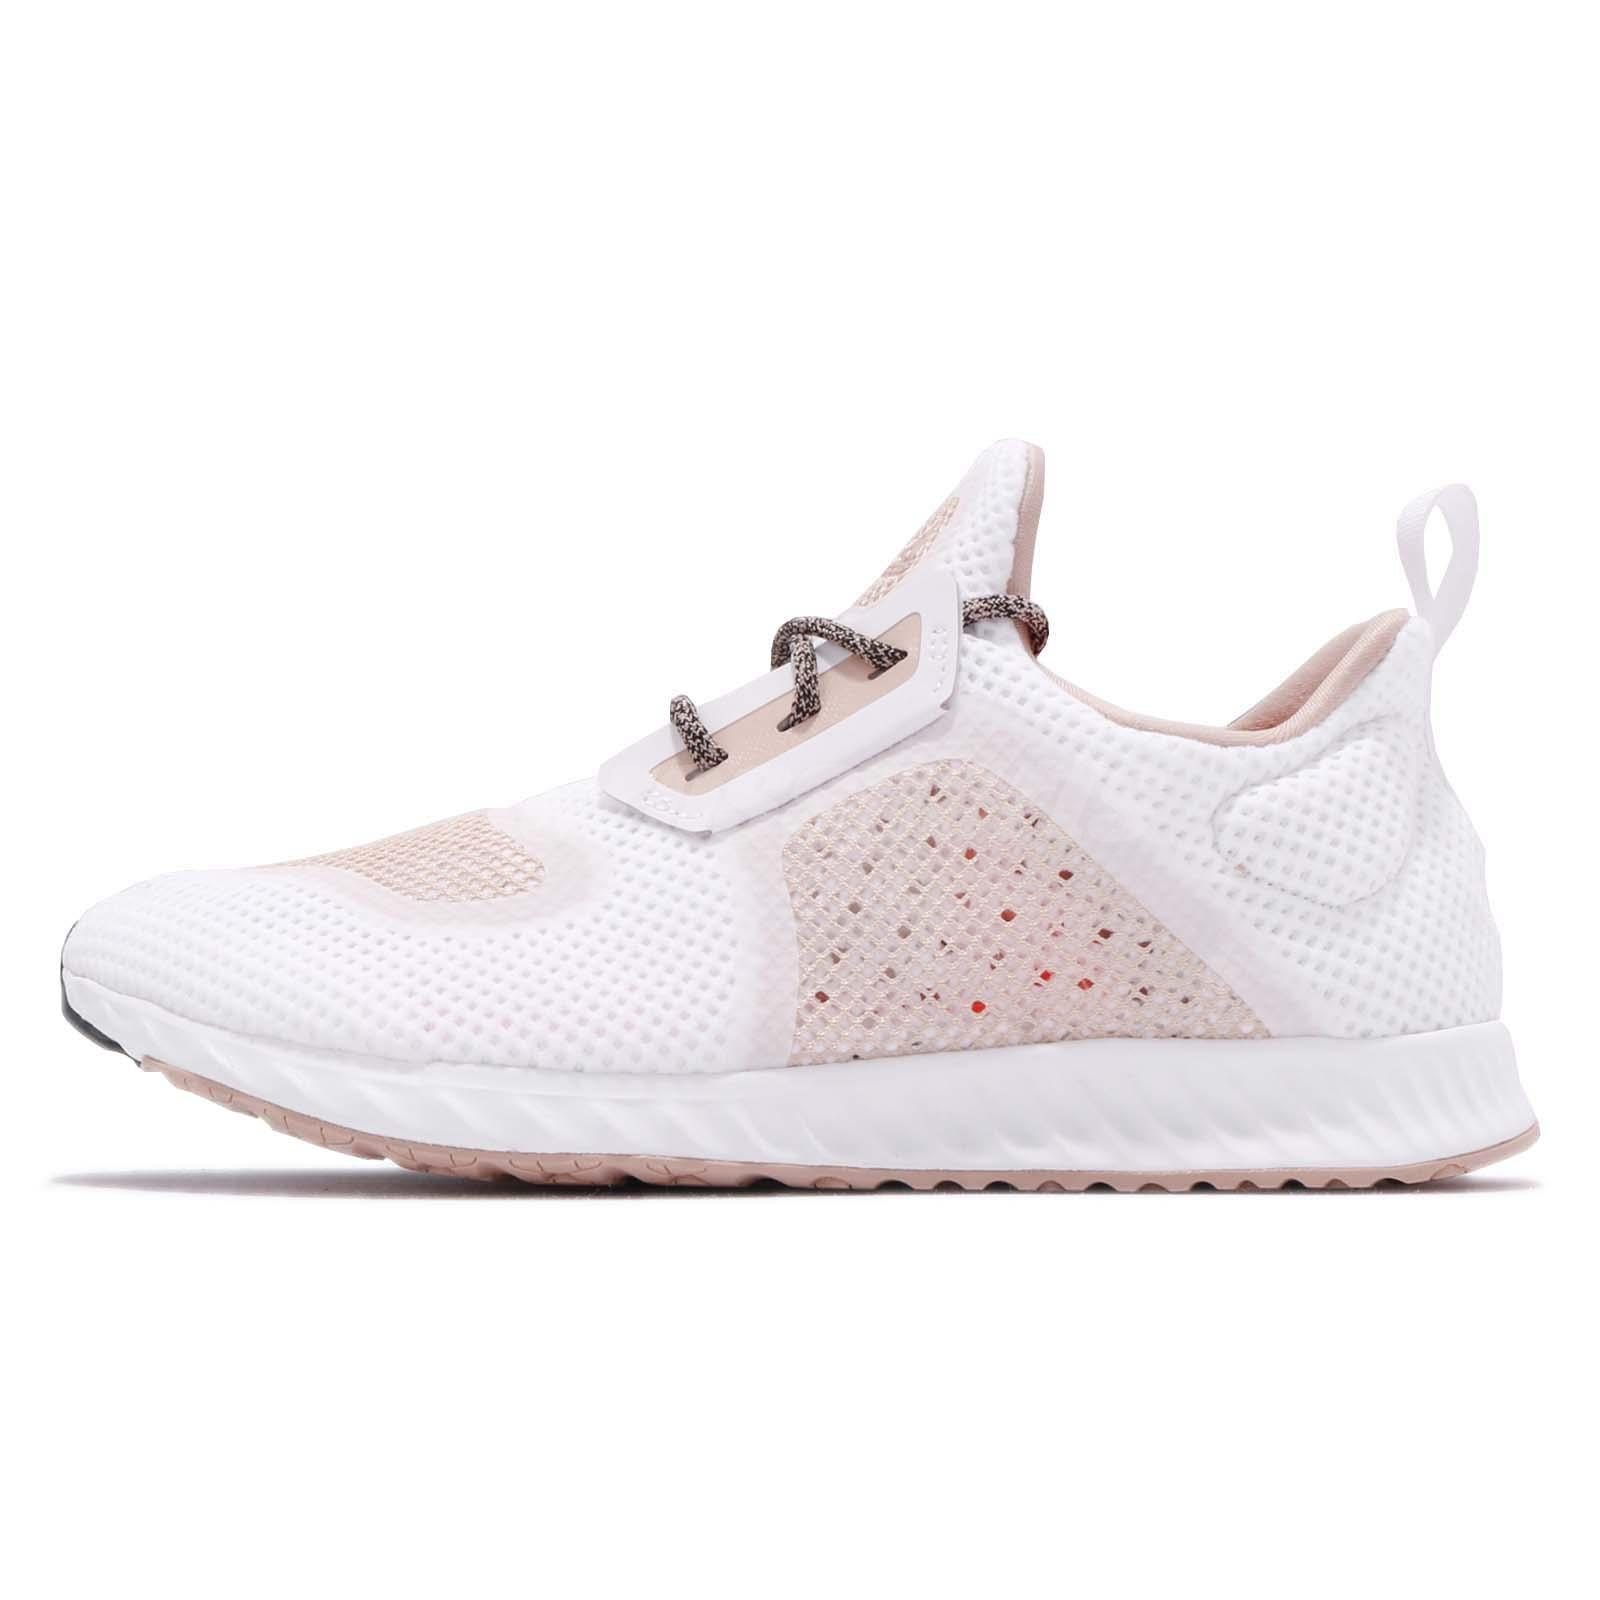 adidas Edge Lux Clima White Ash Peach Pink Women Running Shoes Sneakers  CG4775 a2e7a7984